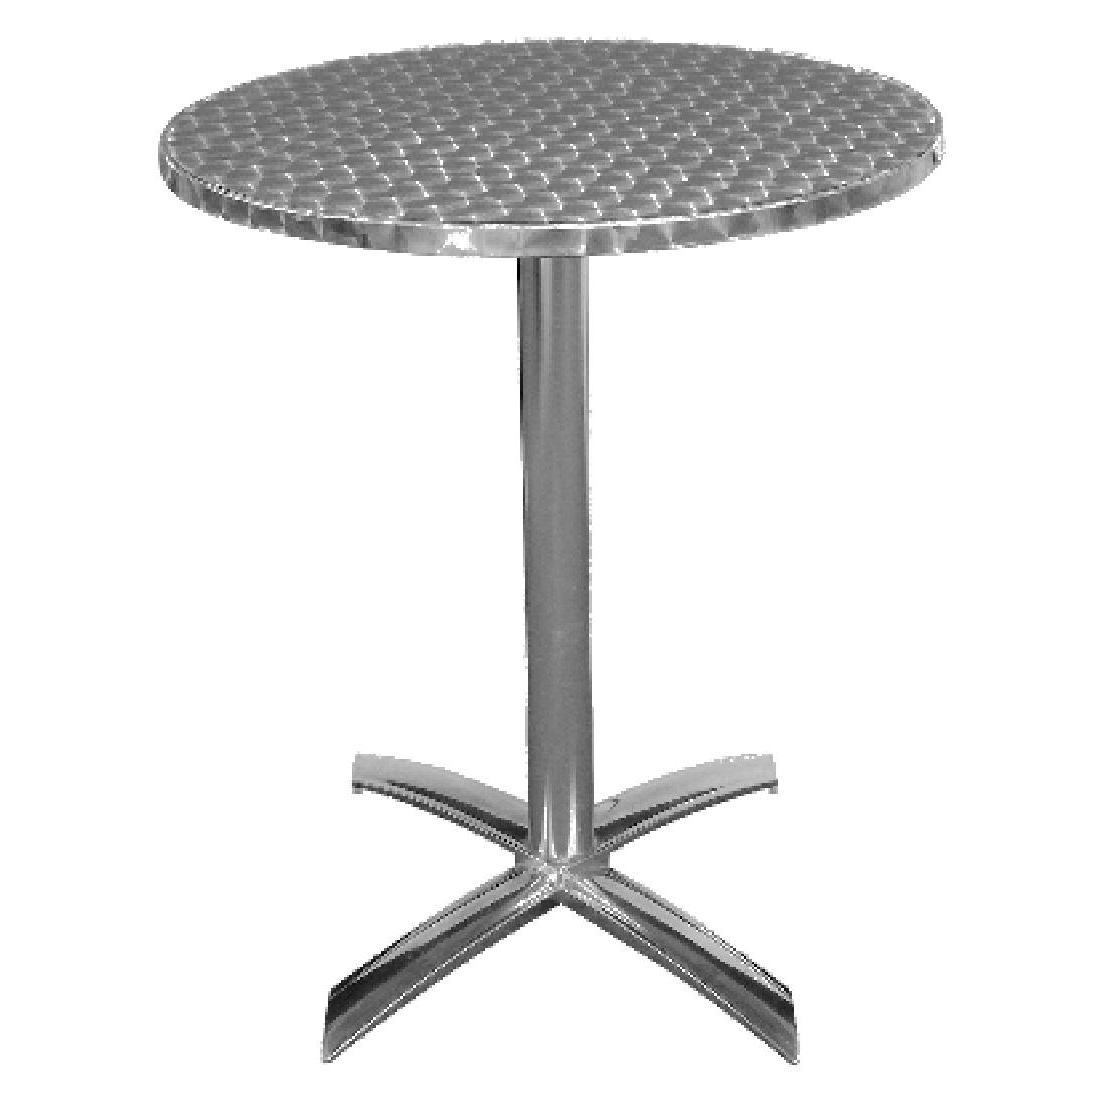 stainless steel flip top bistro table round or square. Black Bedroom Furniture Sets. Home Design Ideas